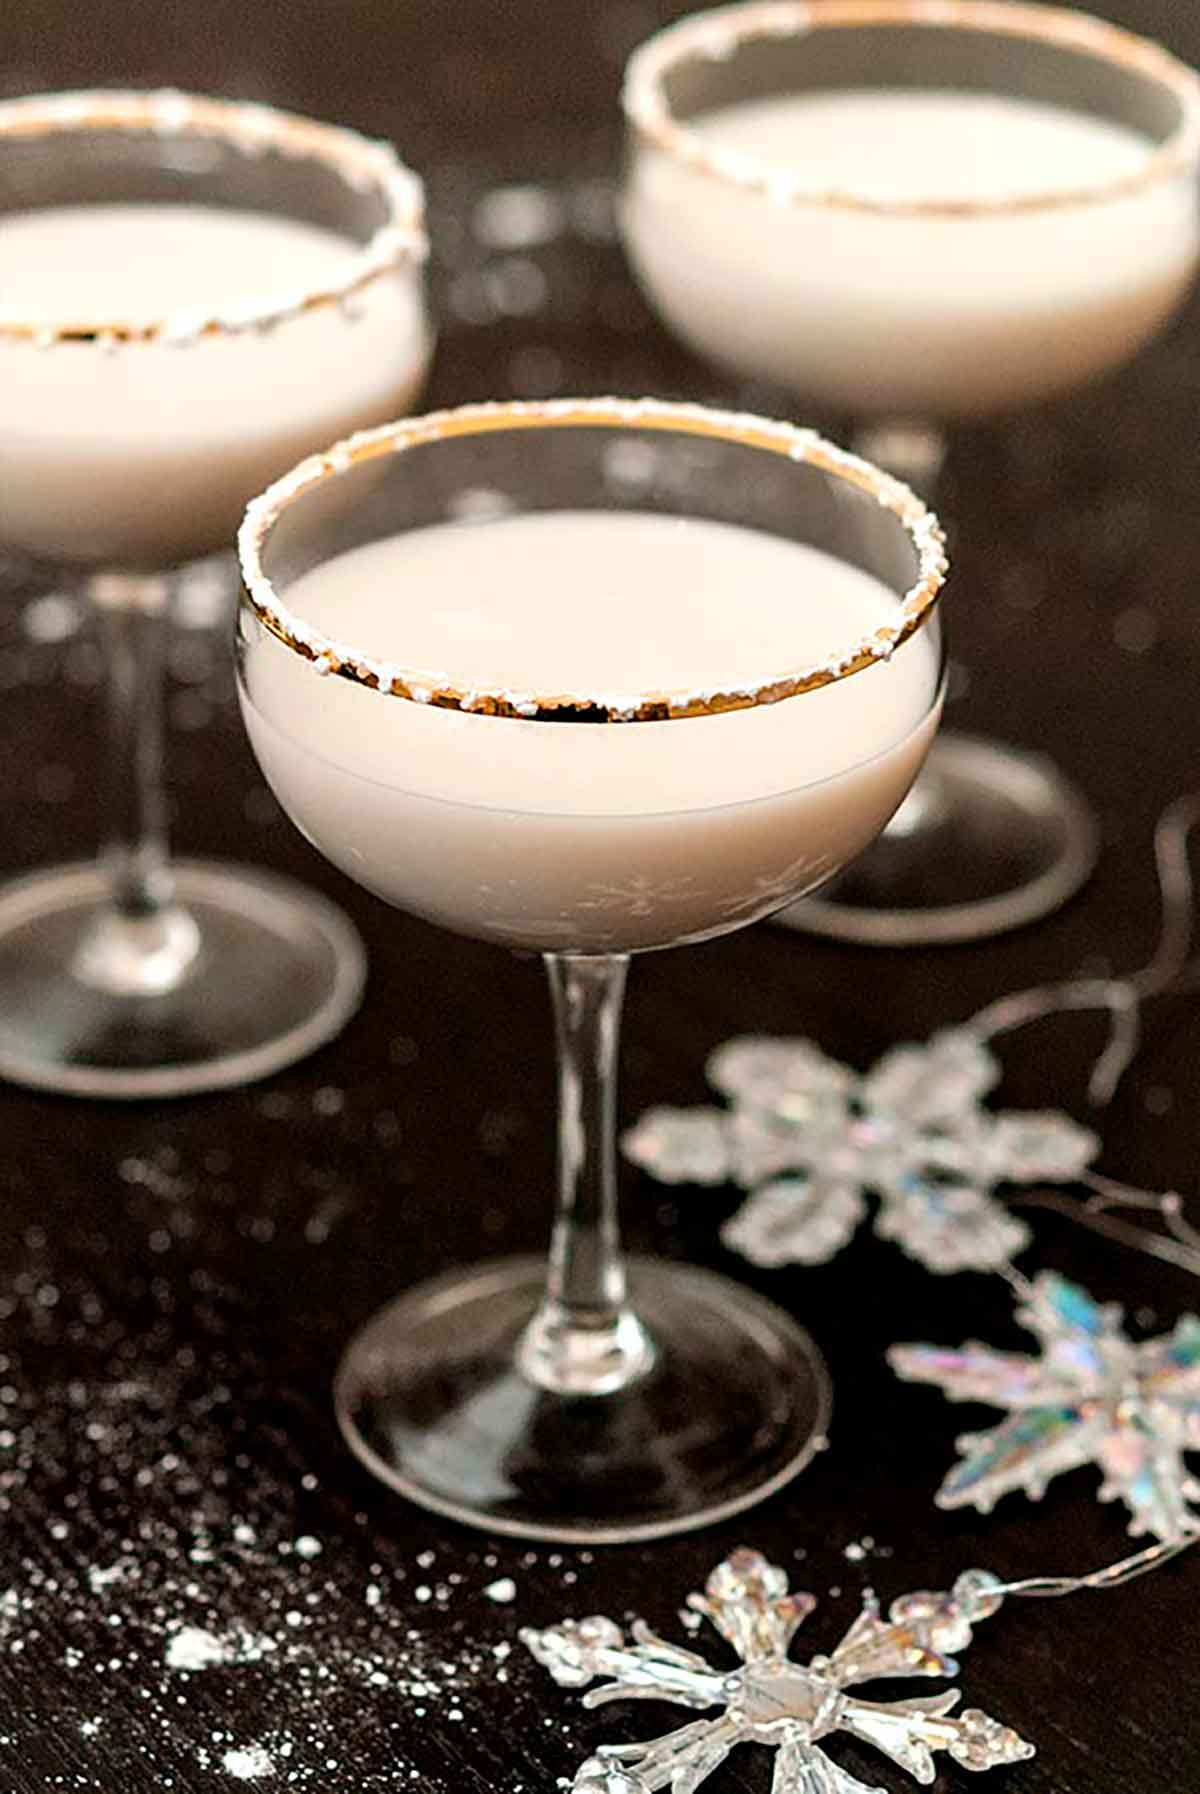 3 white cocktails, rimmed with powdered sugar, on a black table, sprinkled with sugar and with a few snowflake ornaments.